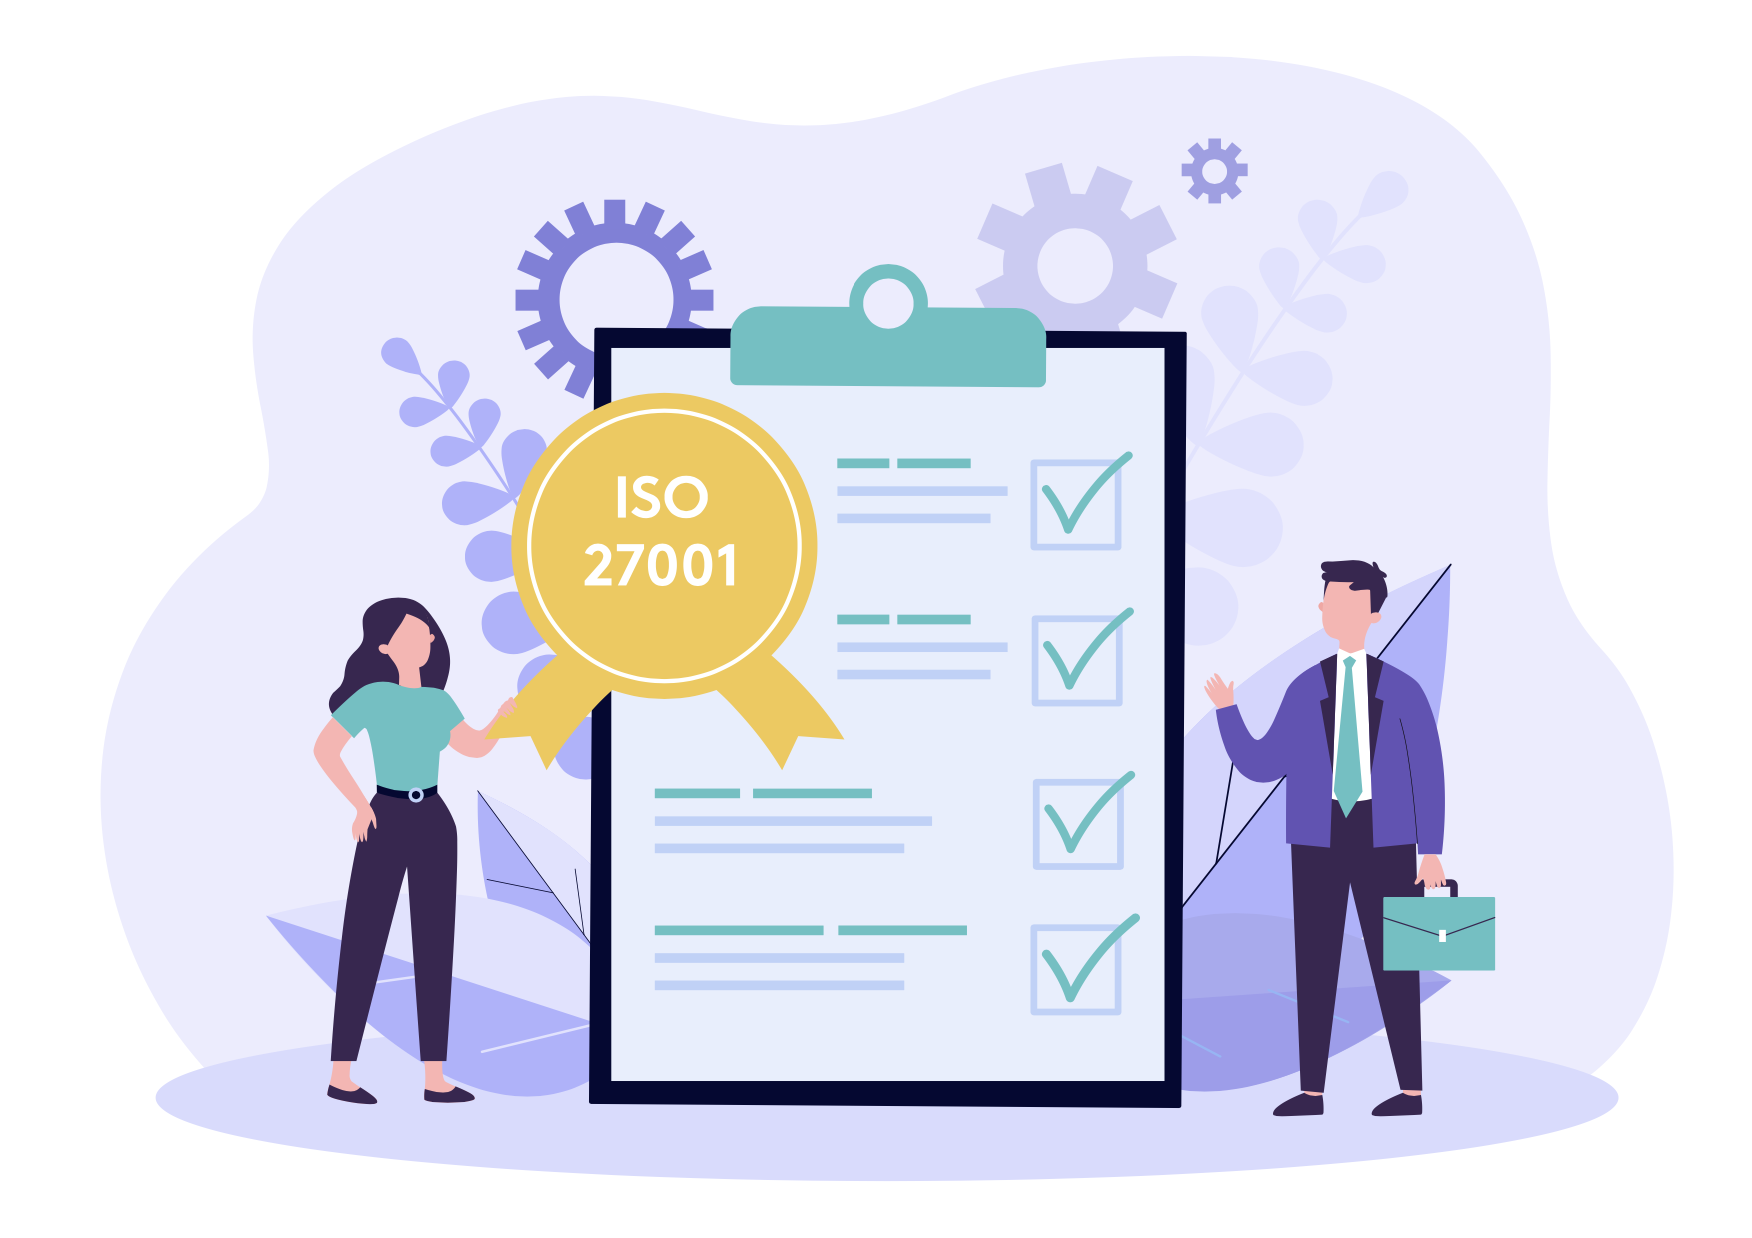 ISO 27001 Step-by-Step Checklist